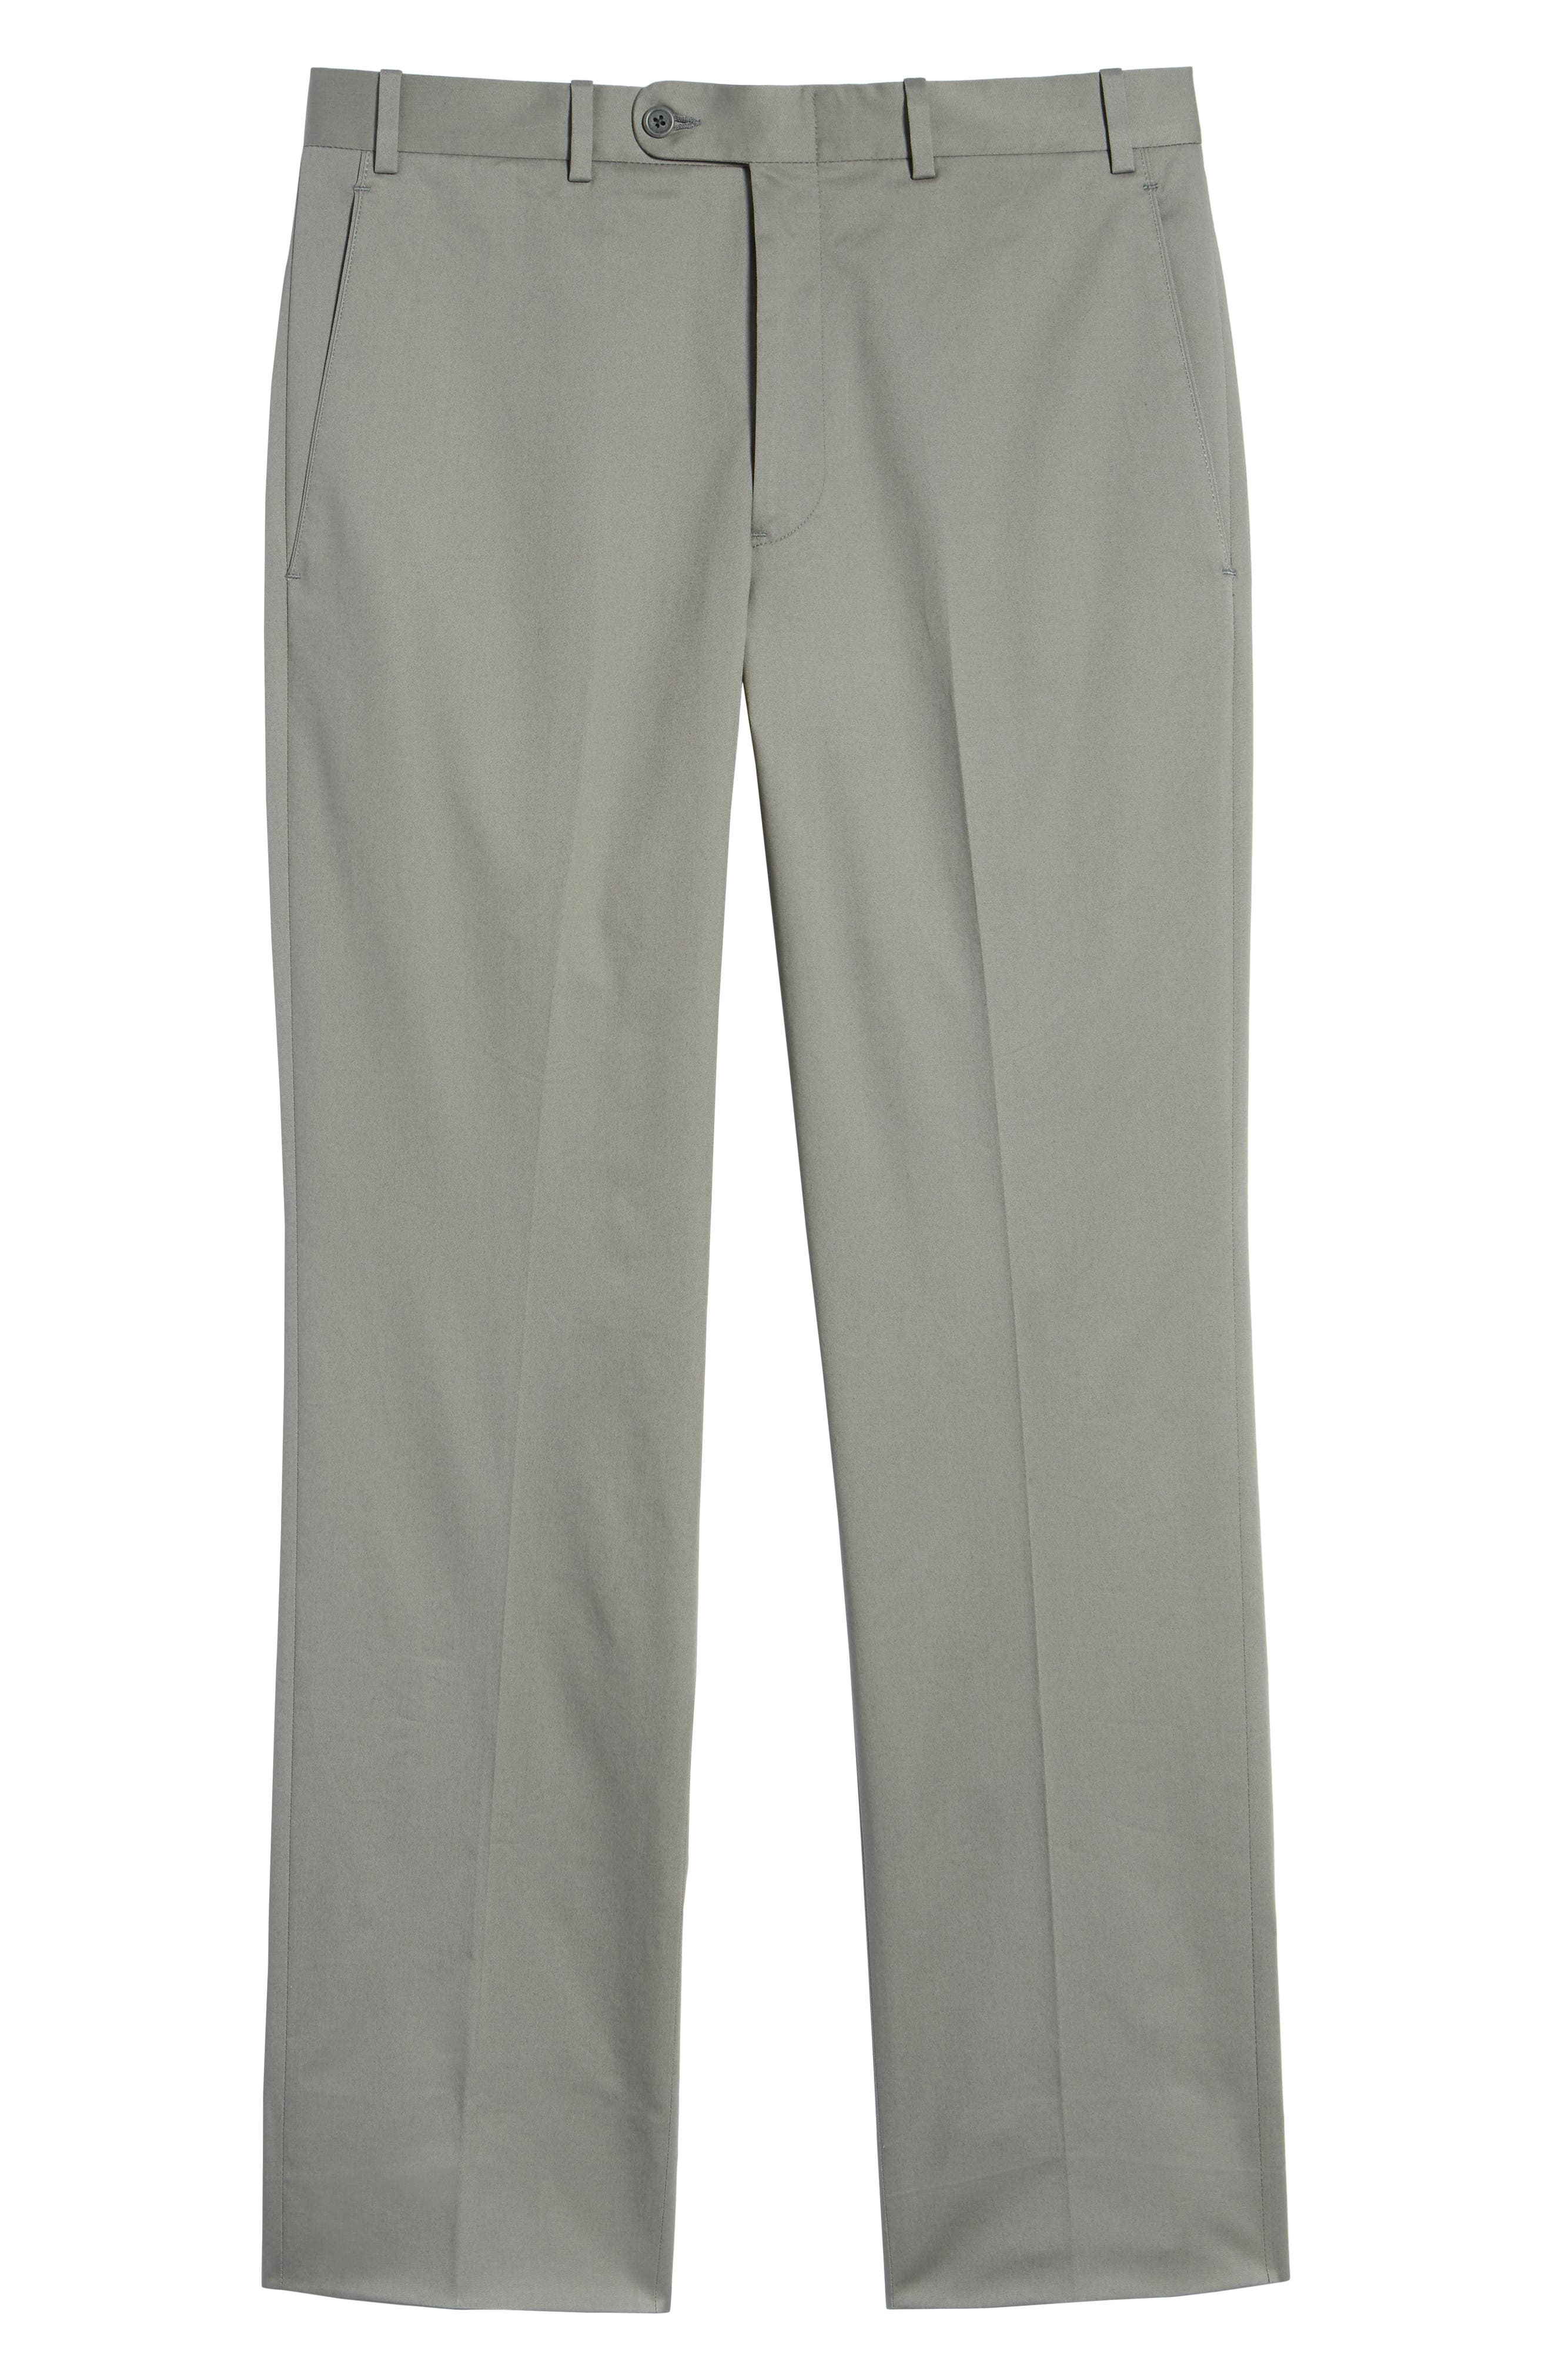 Torino Traditional Fit Flat Front Solid Stretch Cotton Trousers,                             Alternate thumbnail 6, color,                             GREY